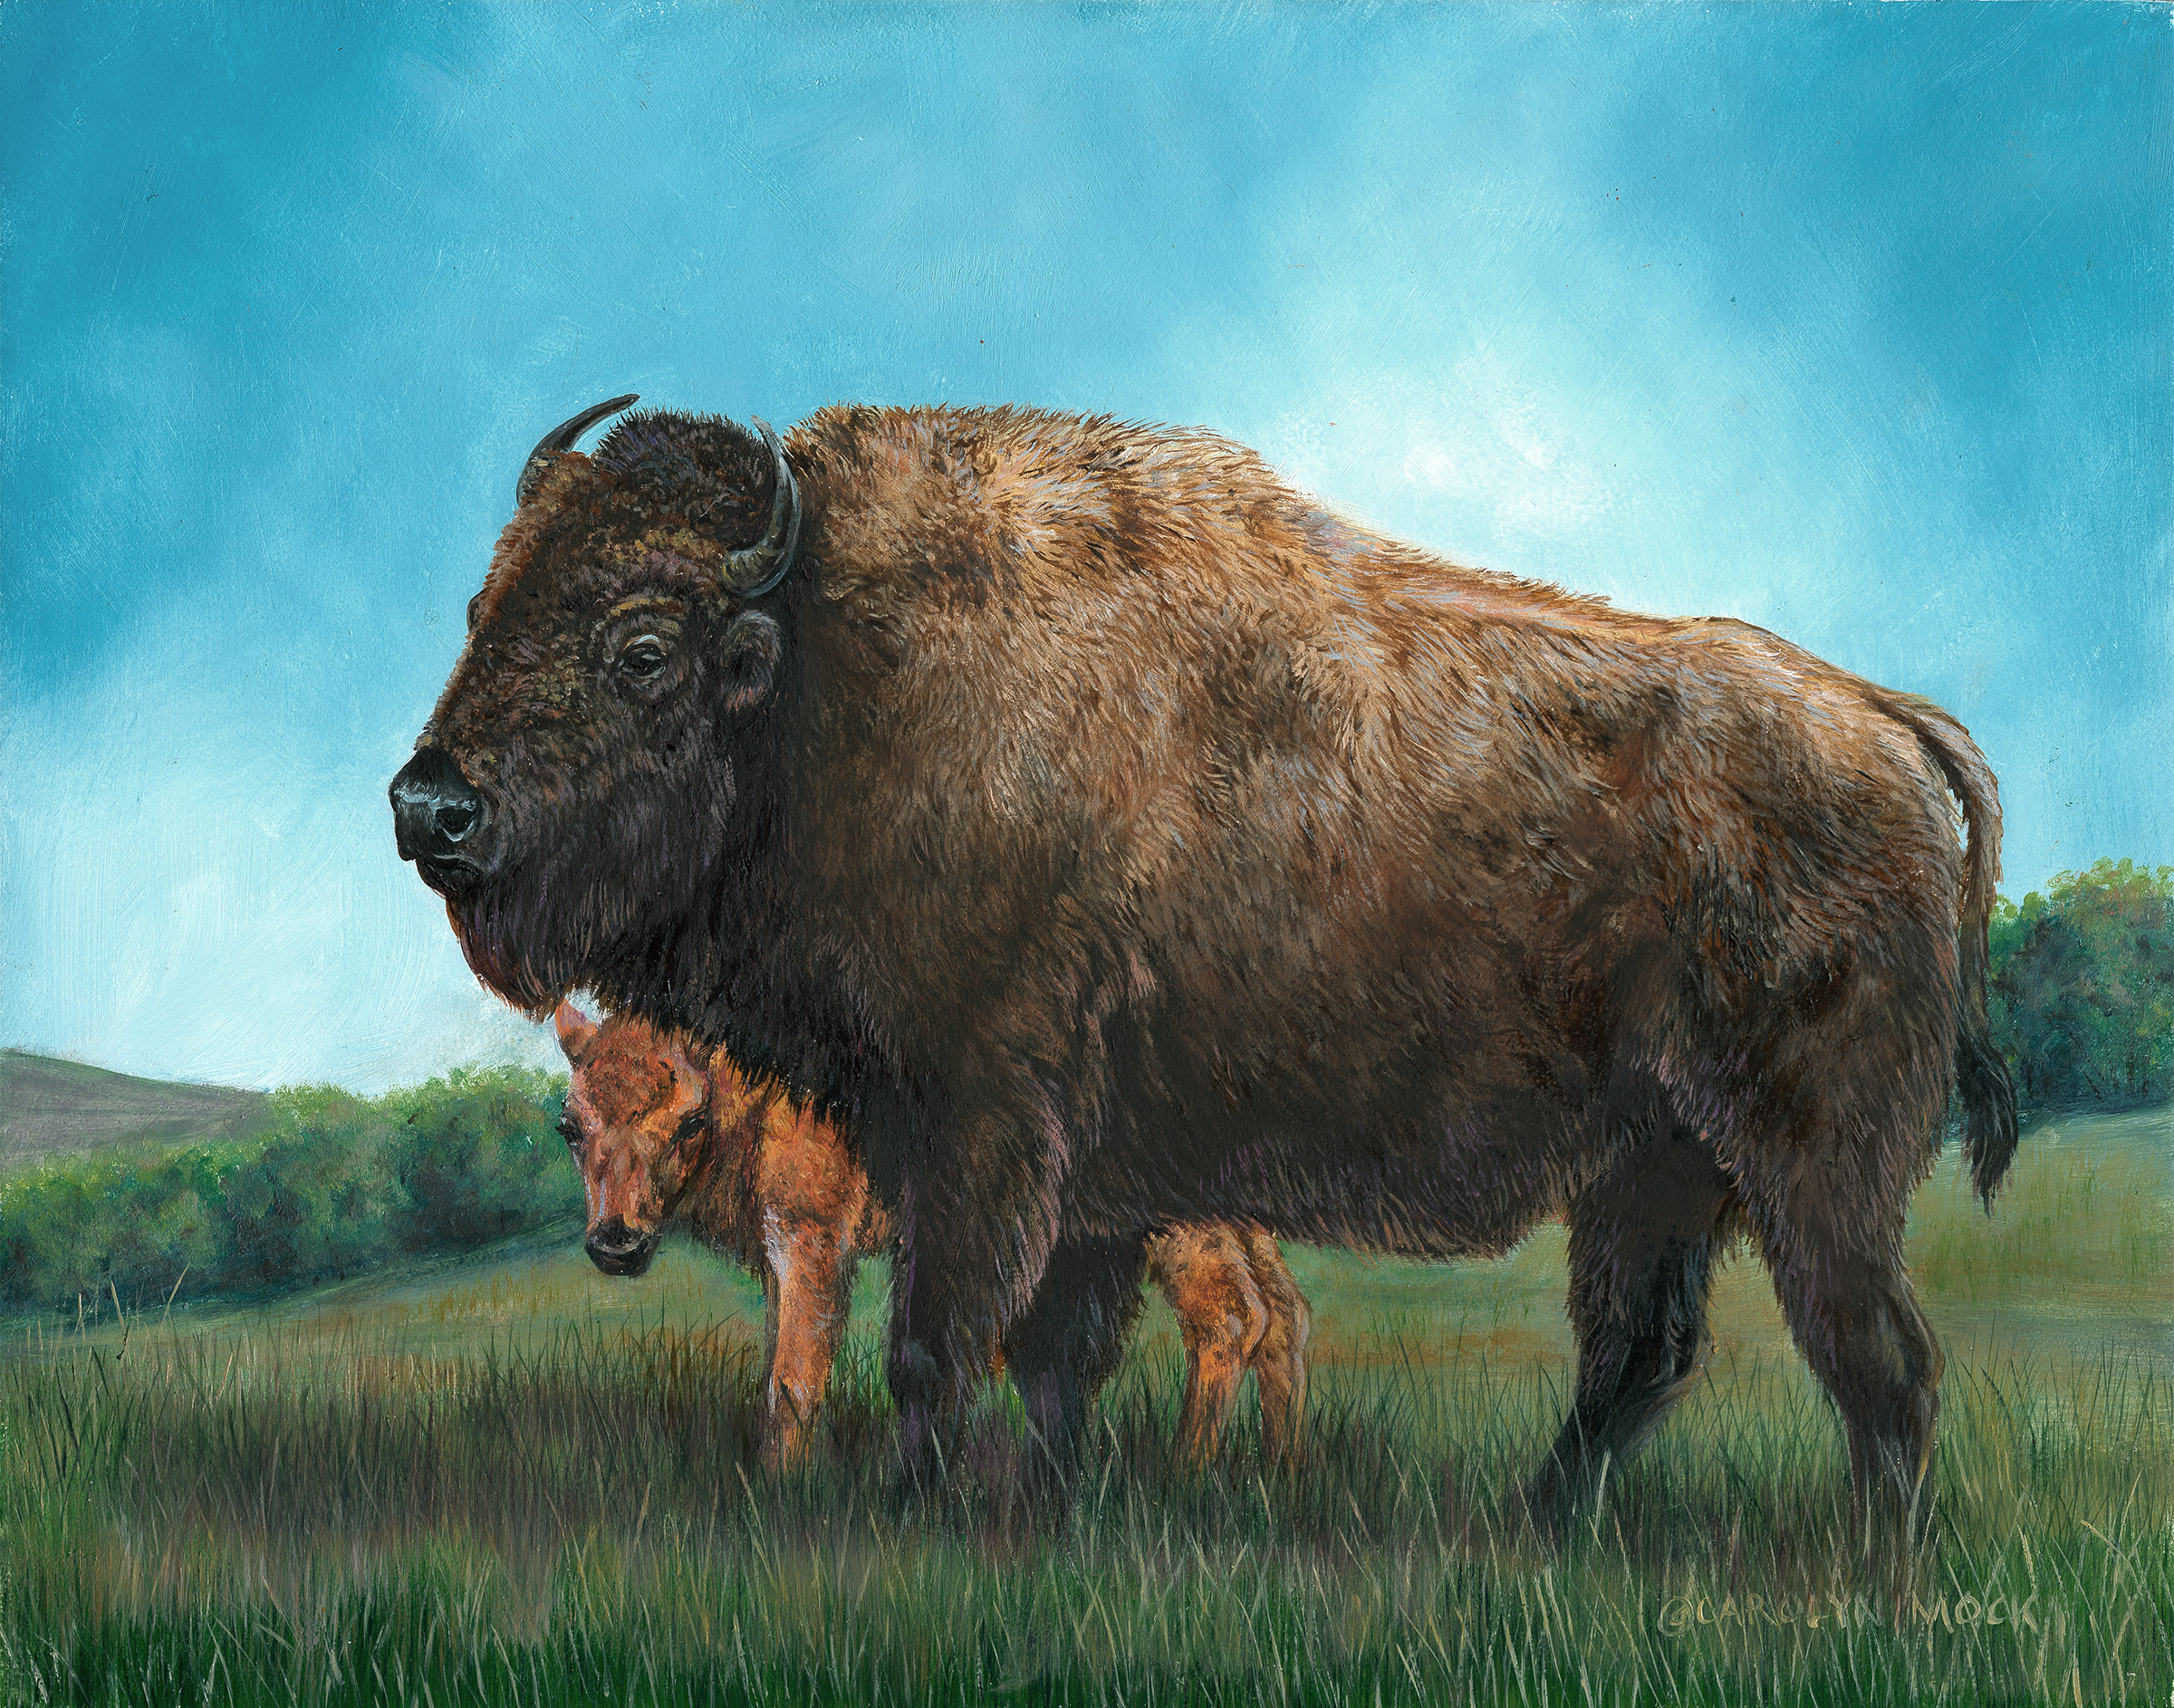 A bison calf peeks around from it's parent